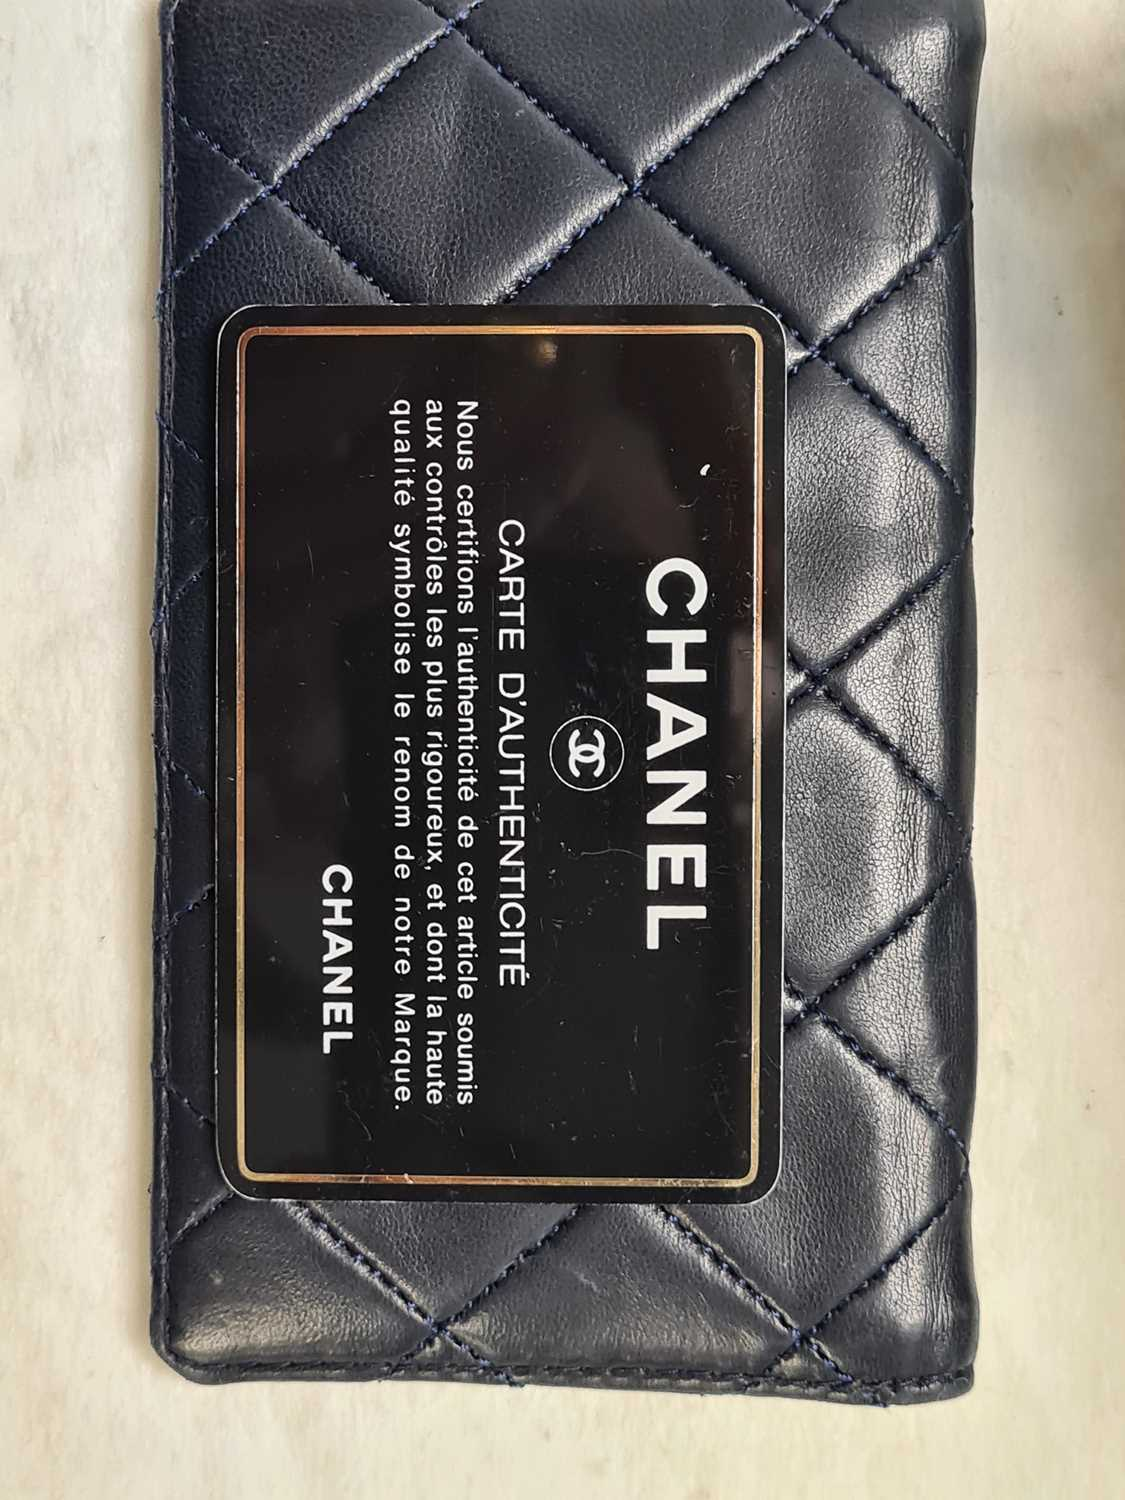 Chanel. A classic quilted leather handbag, of tapered square design, with gold tone CC logo clasp, - Image 21 of 26